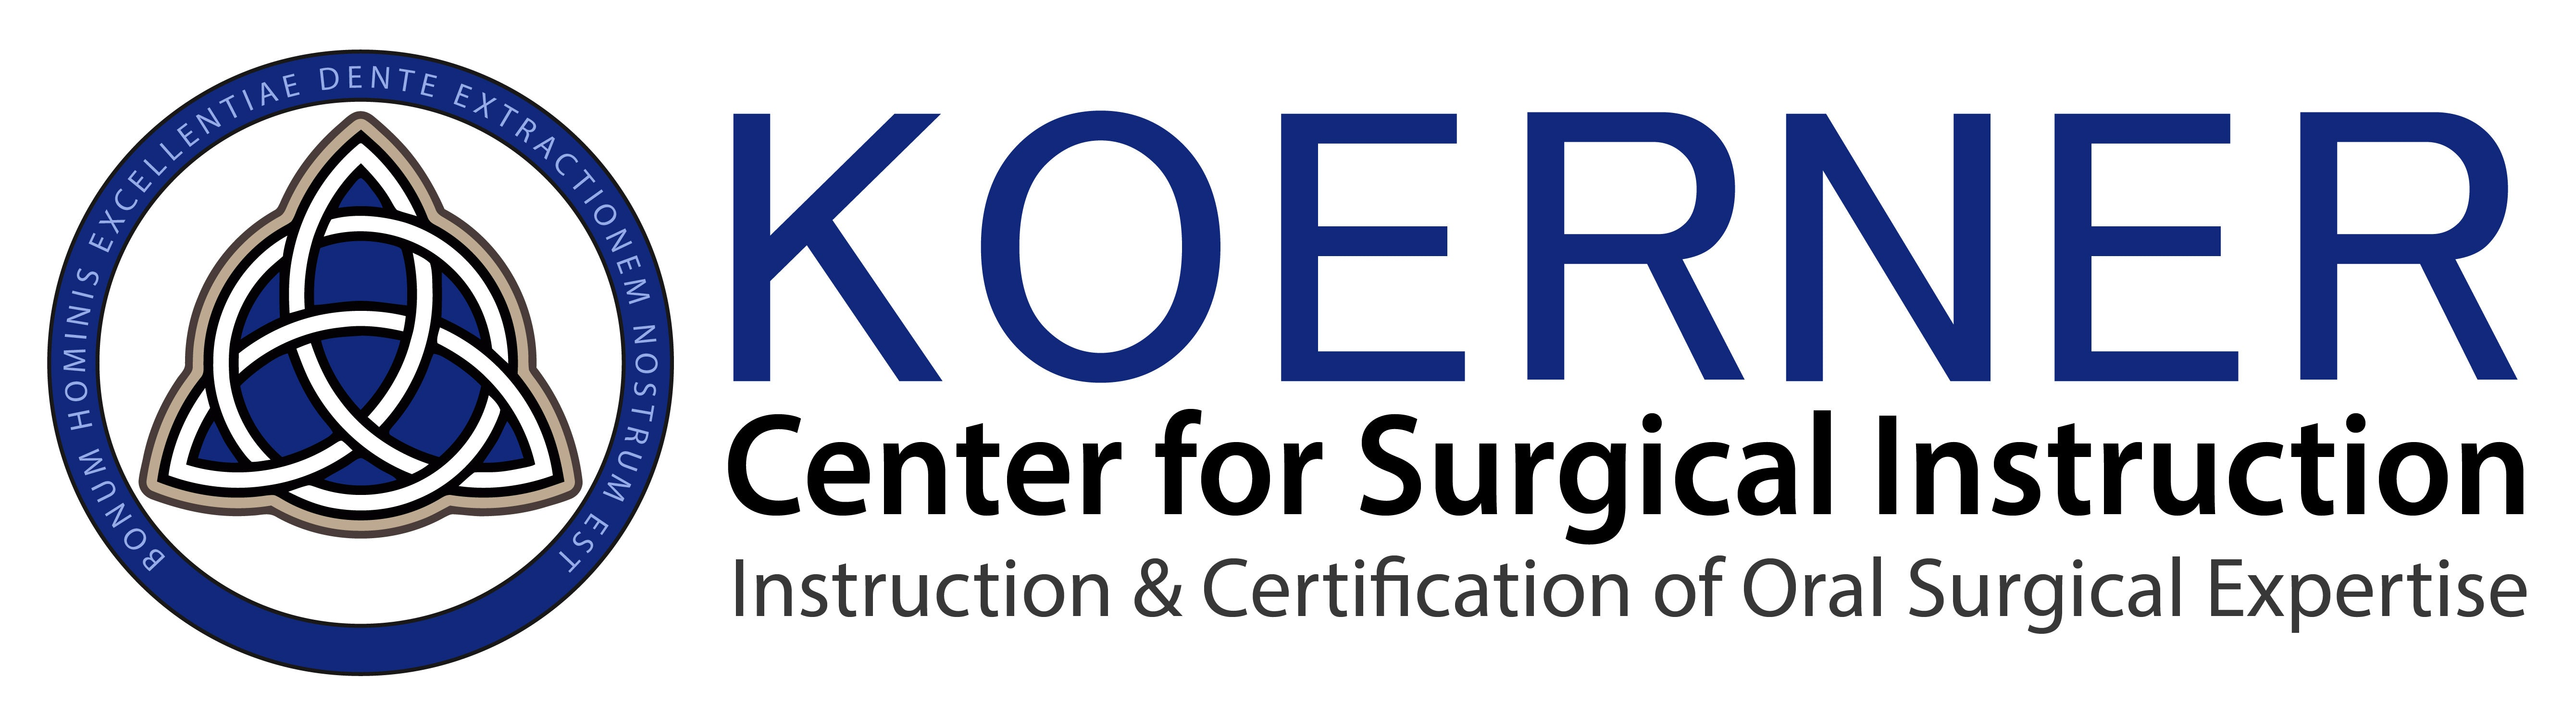 Koerner Center for Surgical Instruction